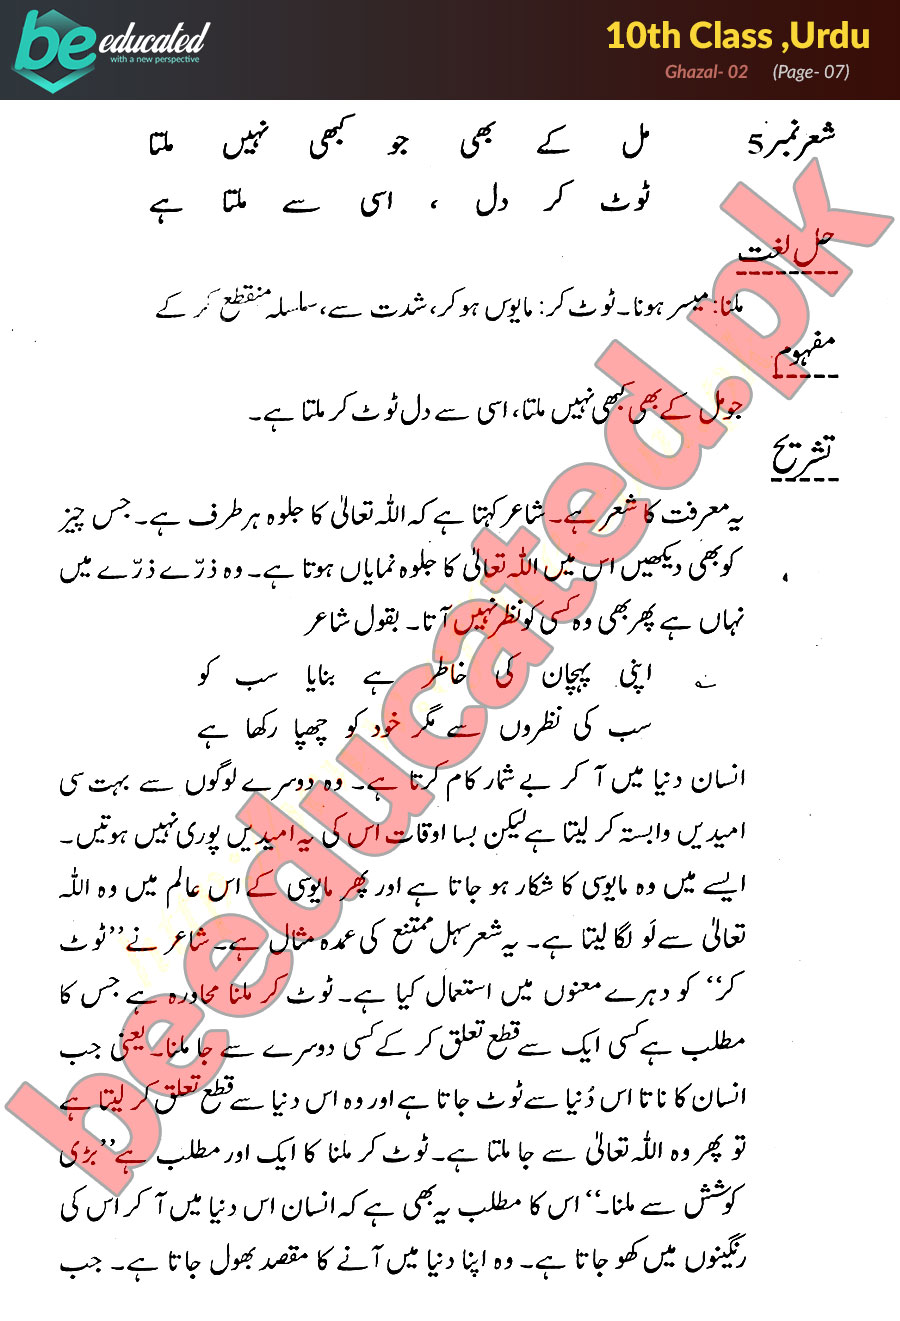 Ghazal 2 Urdu 10th Class Notes - Matric Part 2 Notes